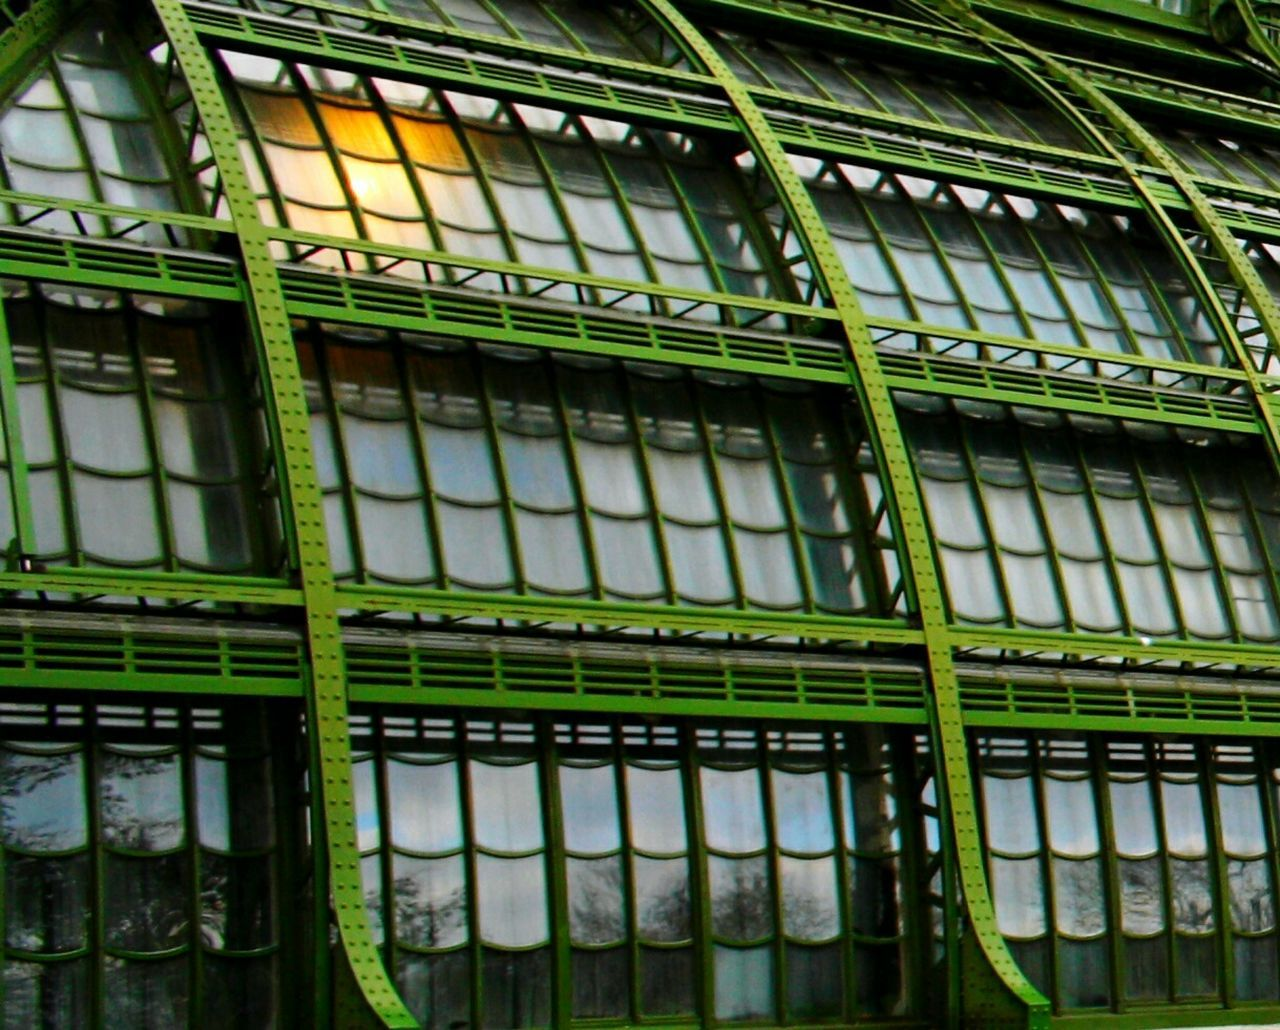 green color, architecture, no people, full frame, outdoors, built structure, day, low angle view, close-up